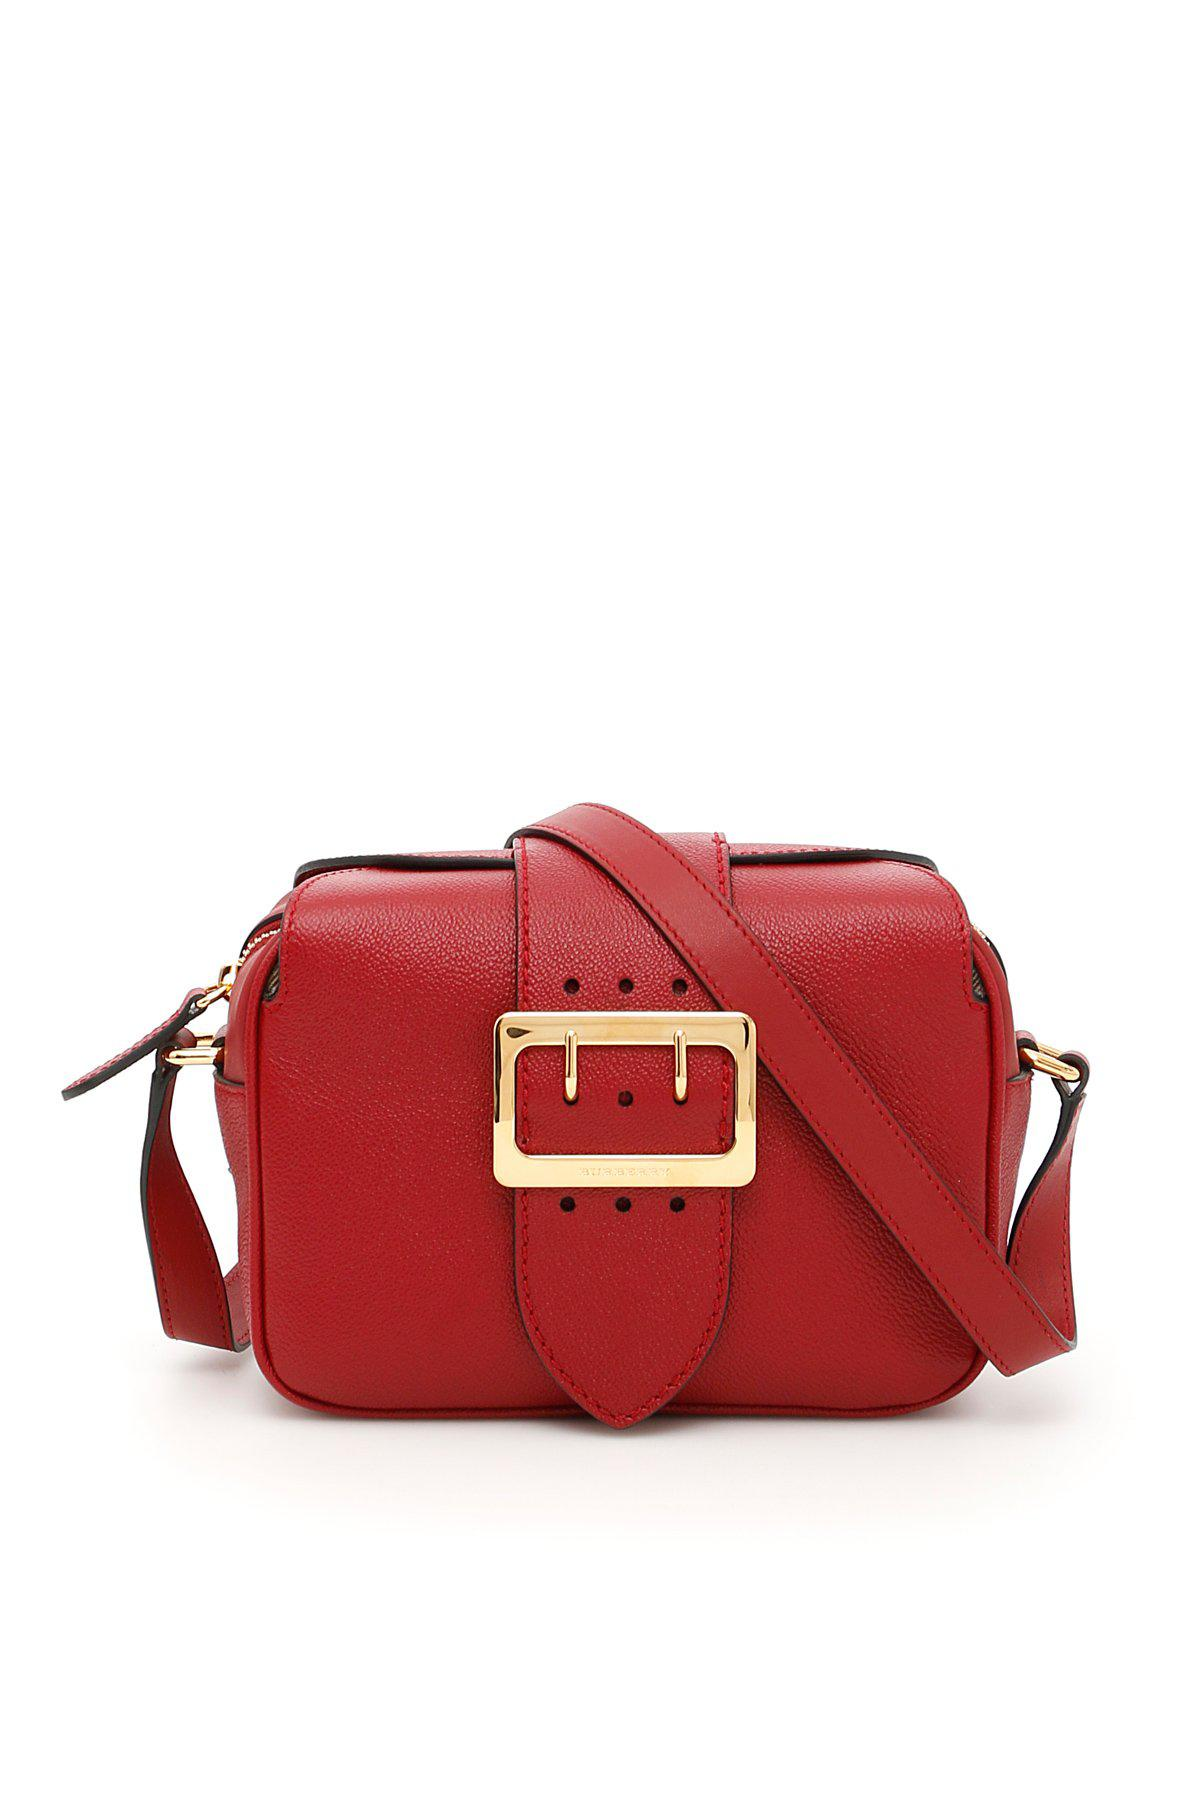 d8412f4aa057 Lyst - Burberry Buckle Bag in Red